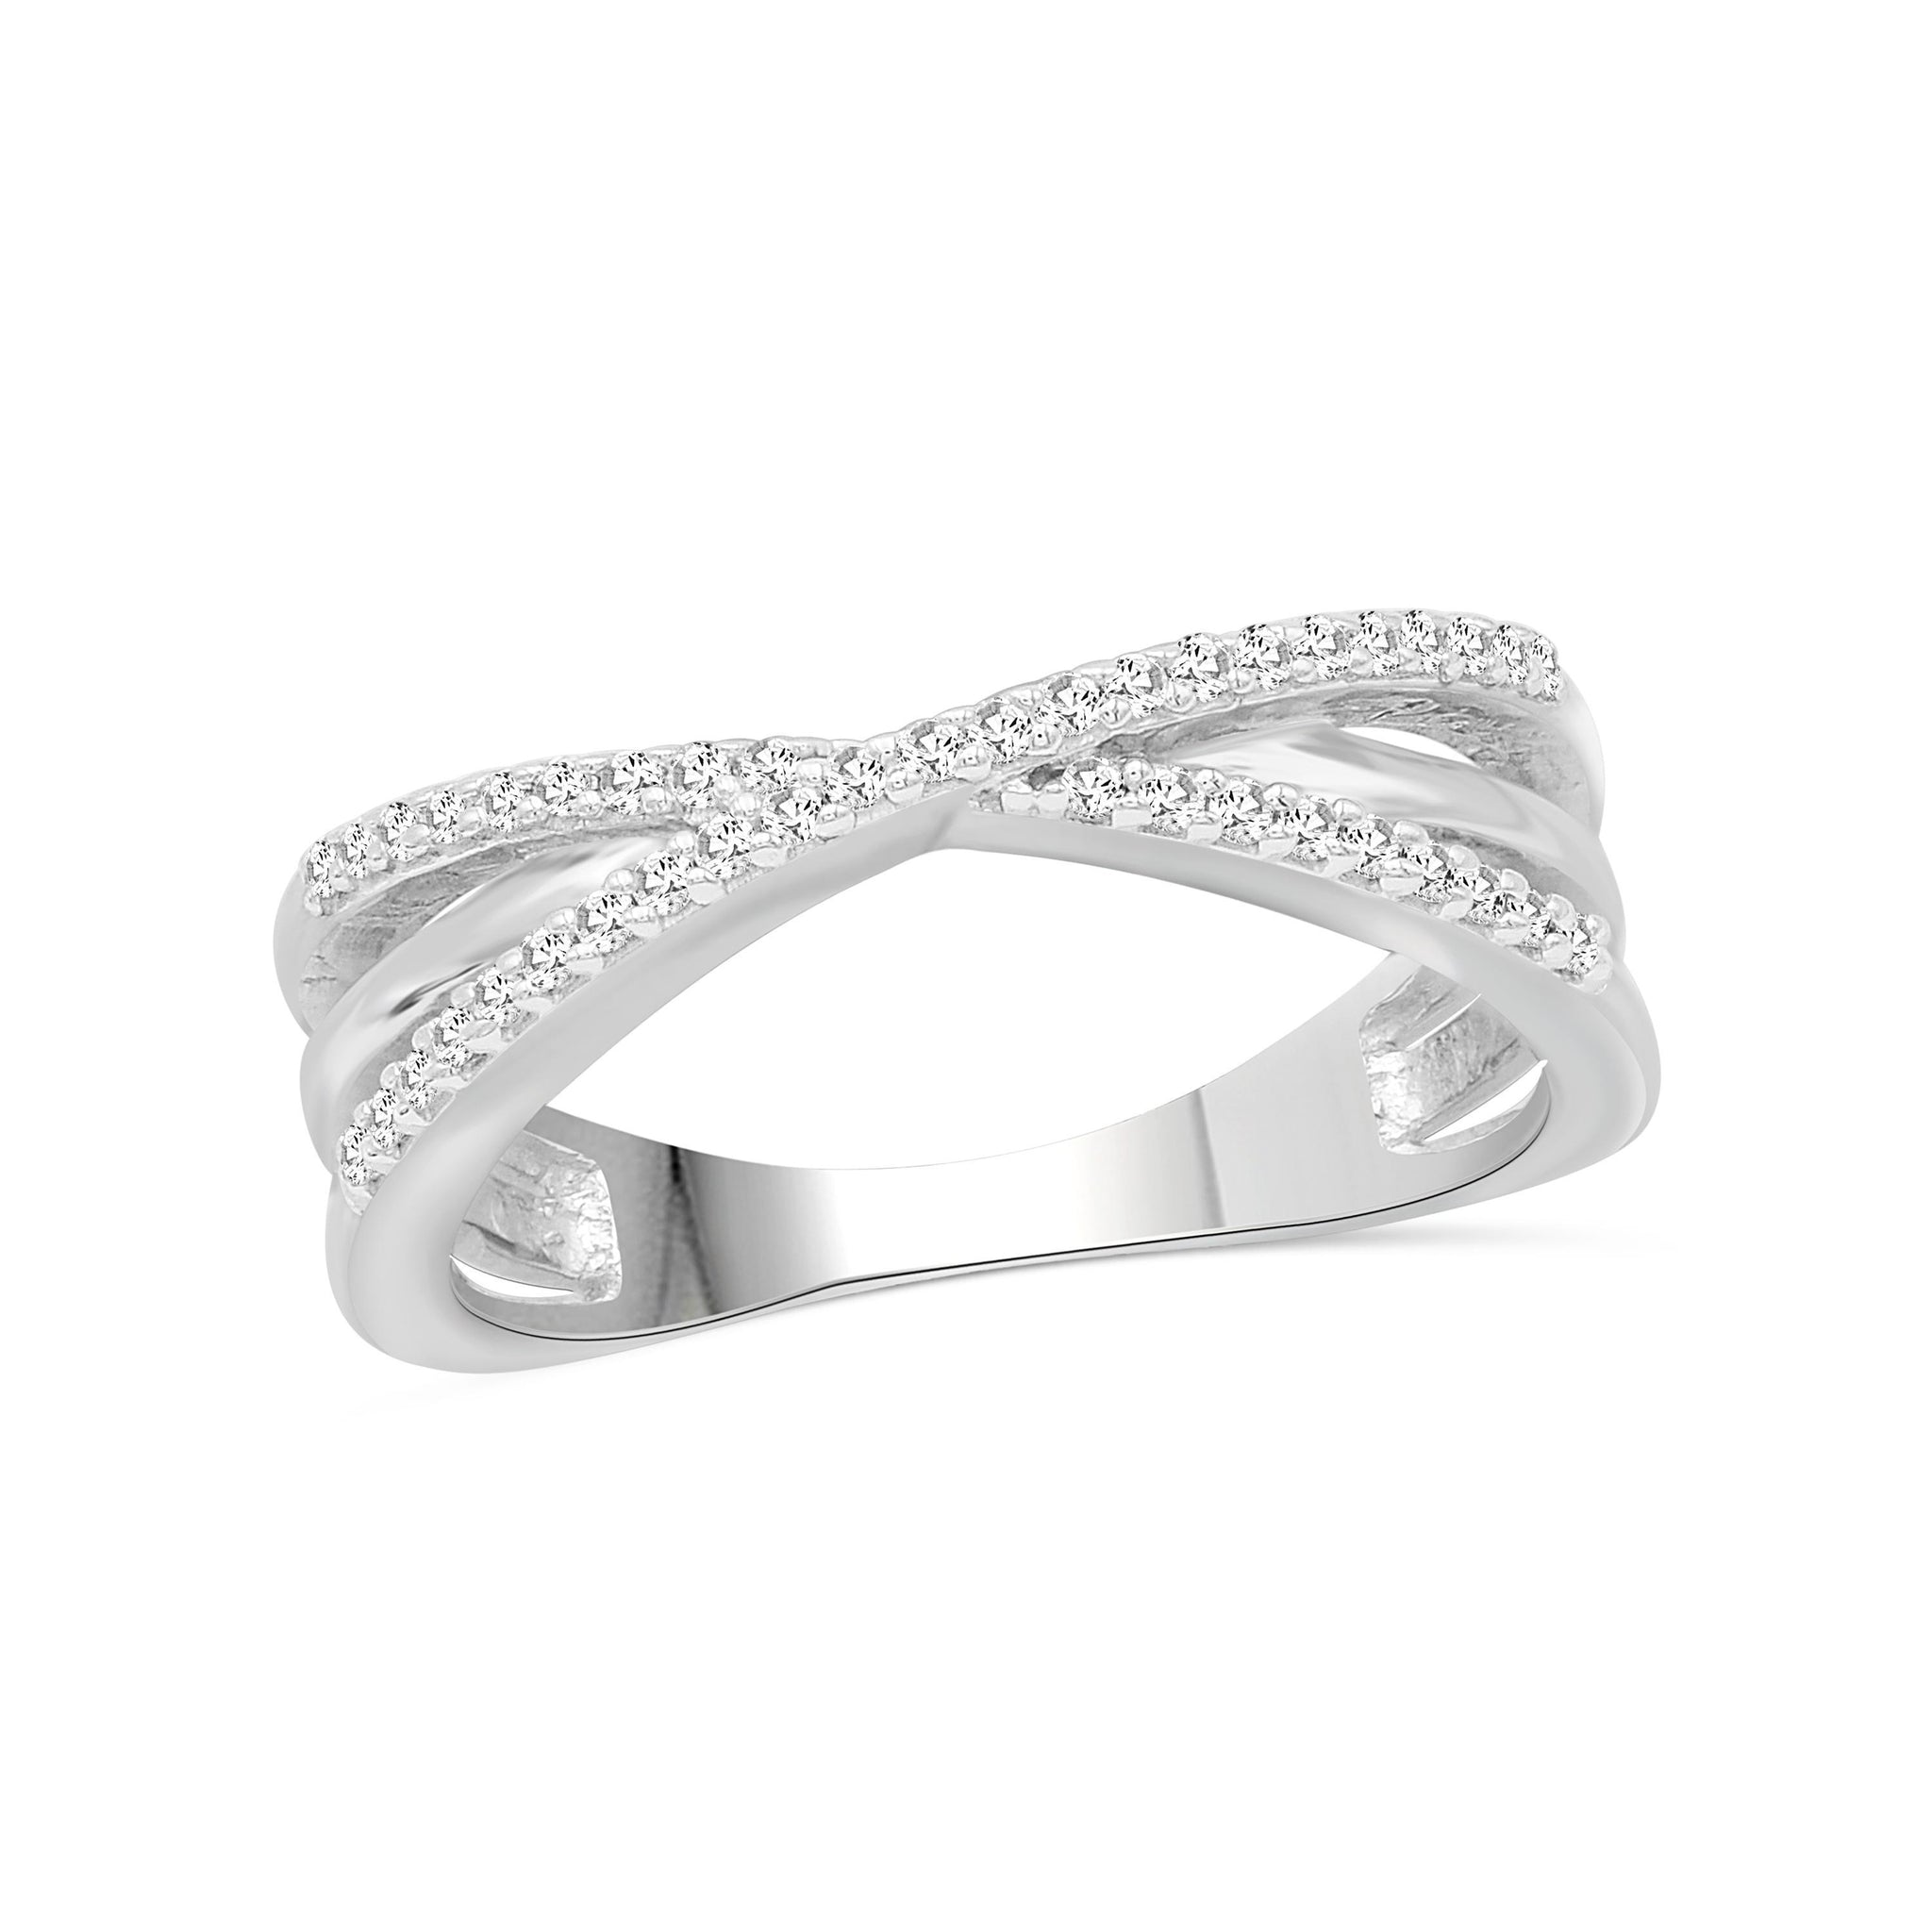 JewelonFire 1/4 Carat T.W. White Diamond Sterling Silver Crossover Ring - Assorted Colors